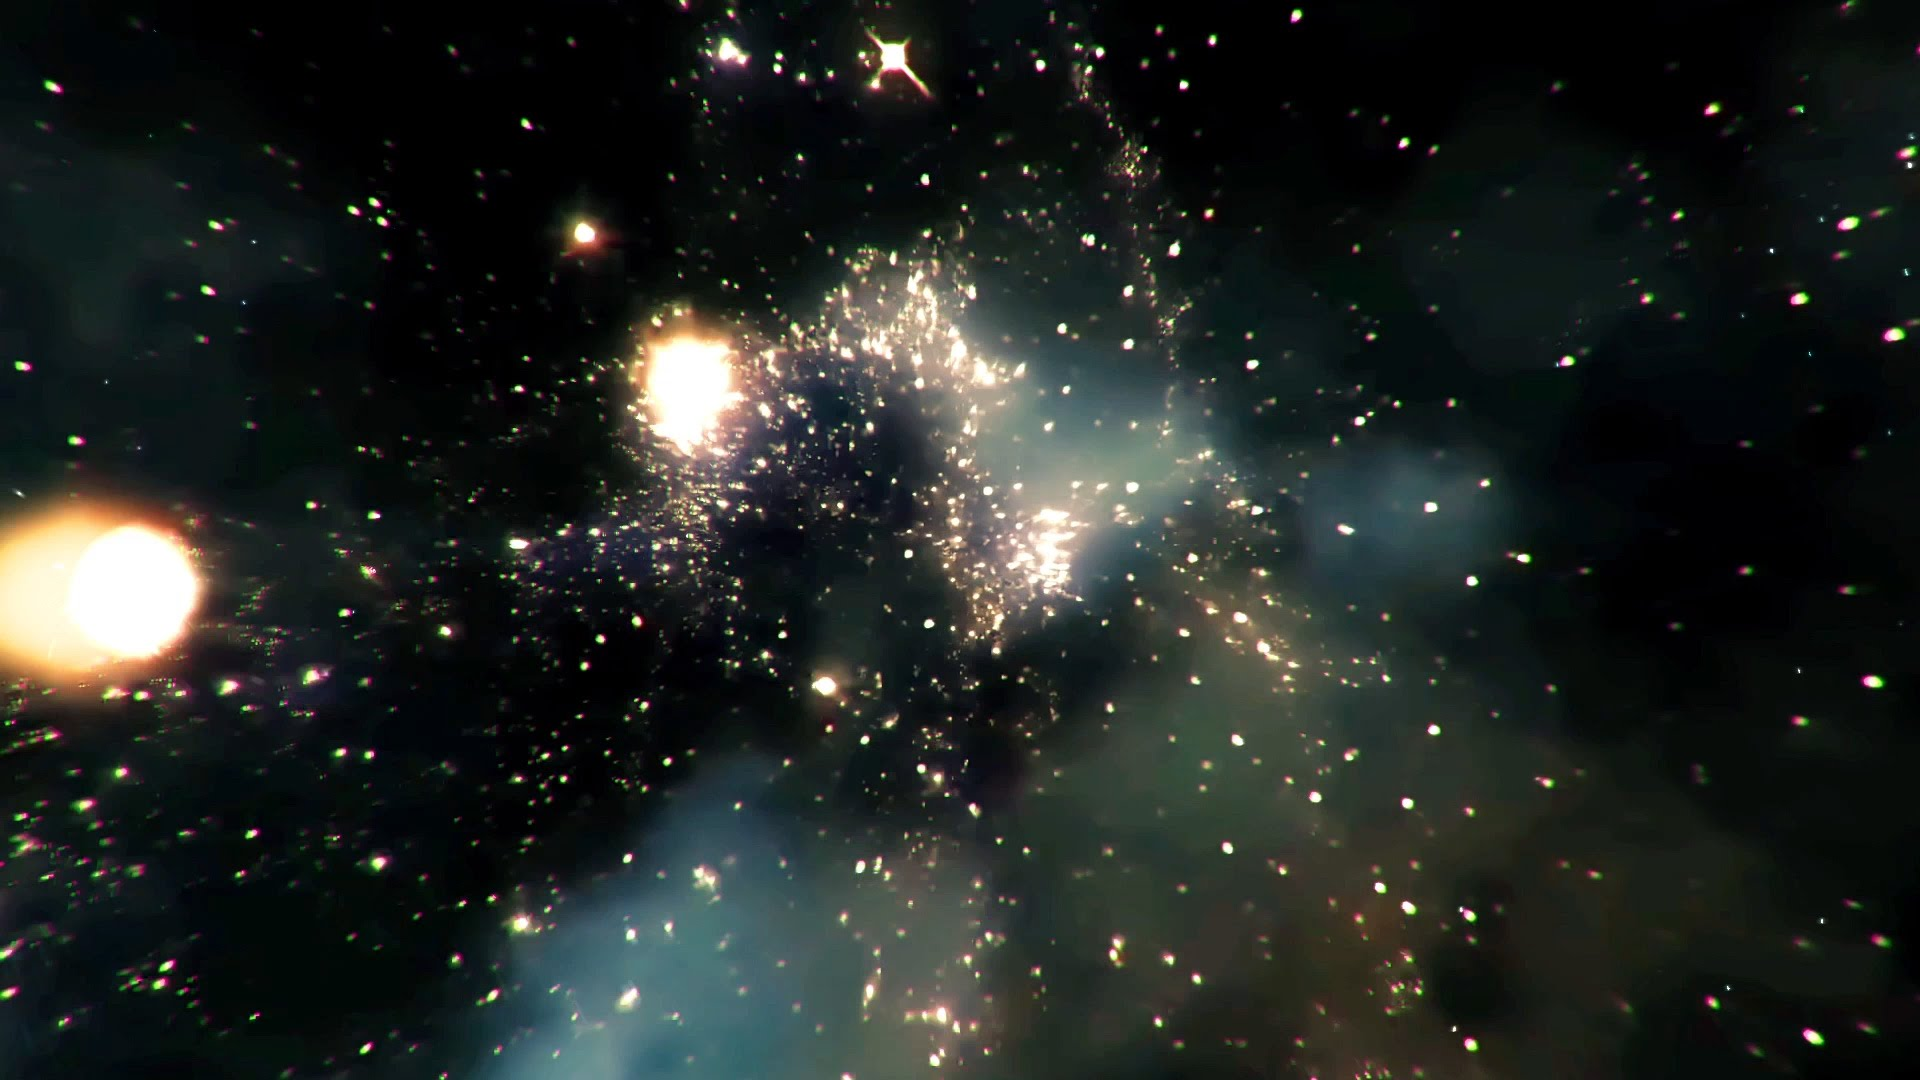 Animated Backgrounds Interstellar Deep Space   Footage 1920x1080